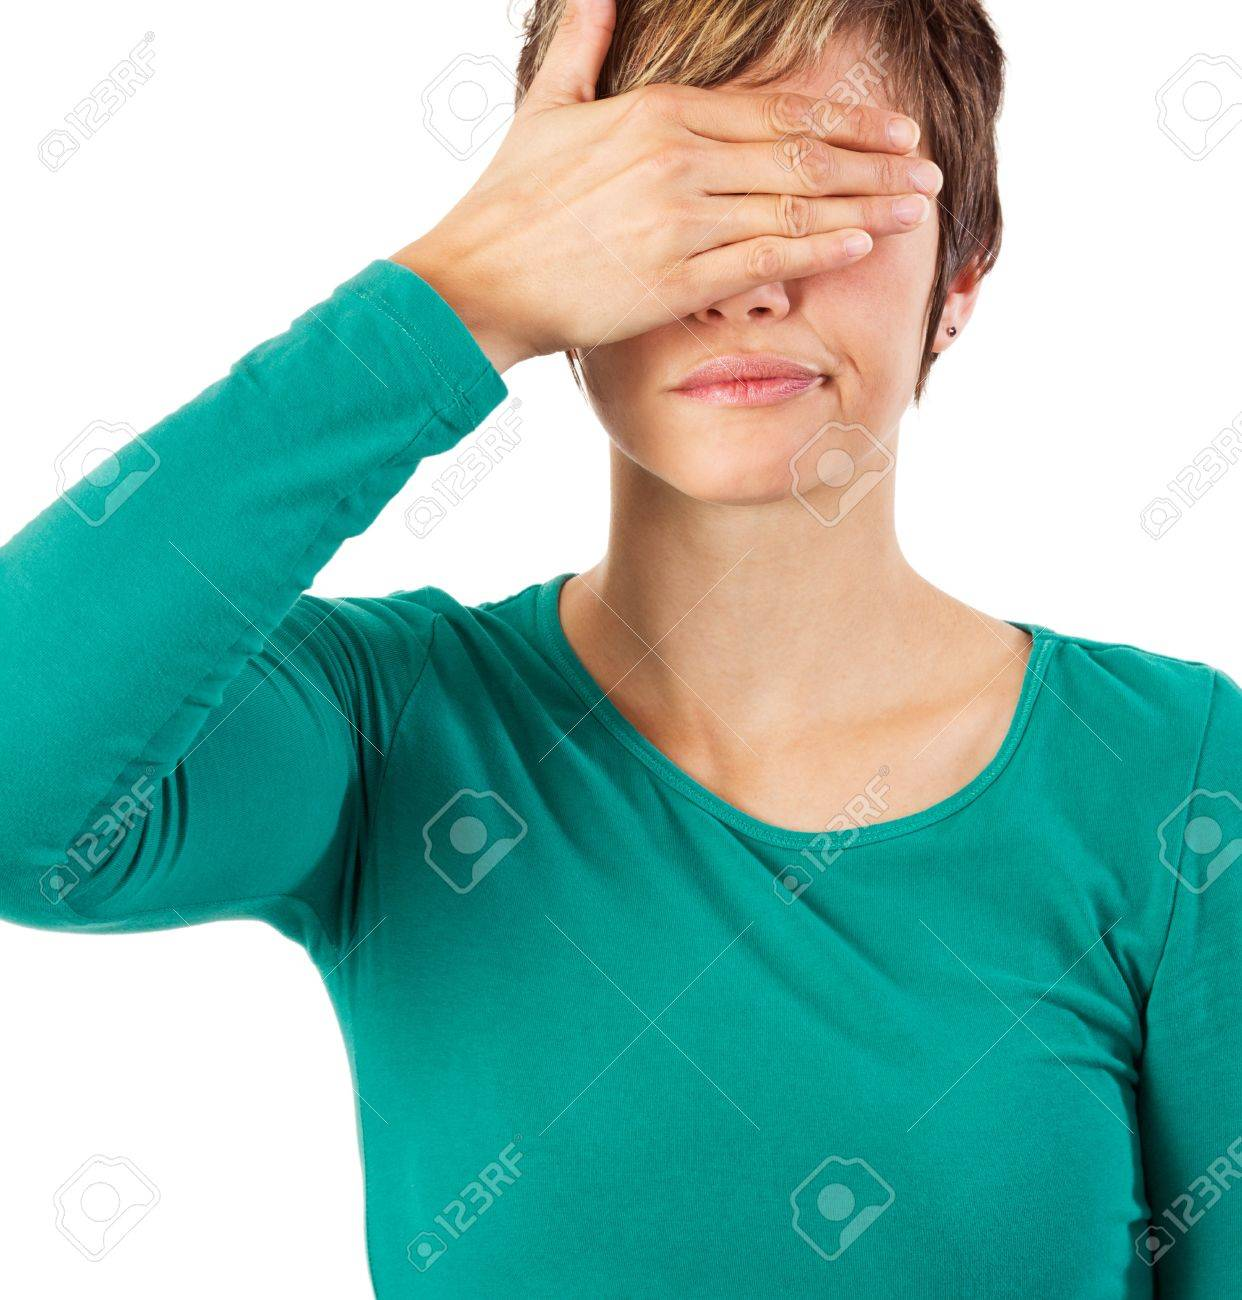 Young woman covering her eyes with her hand. Stock Photo - 12342870